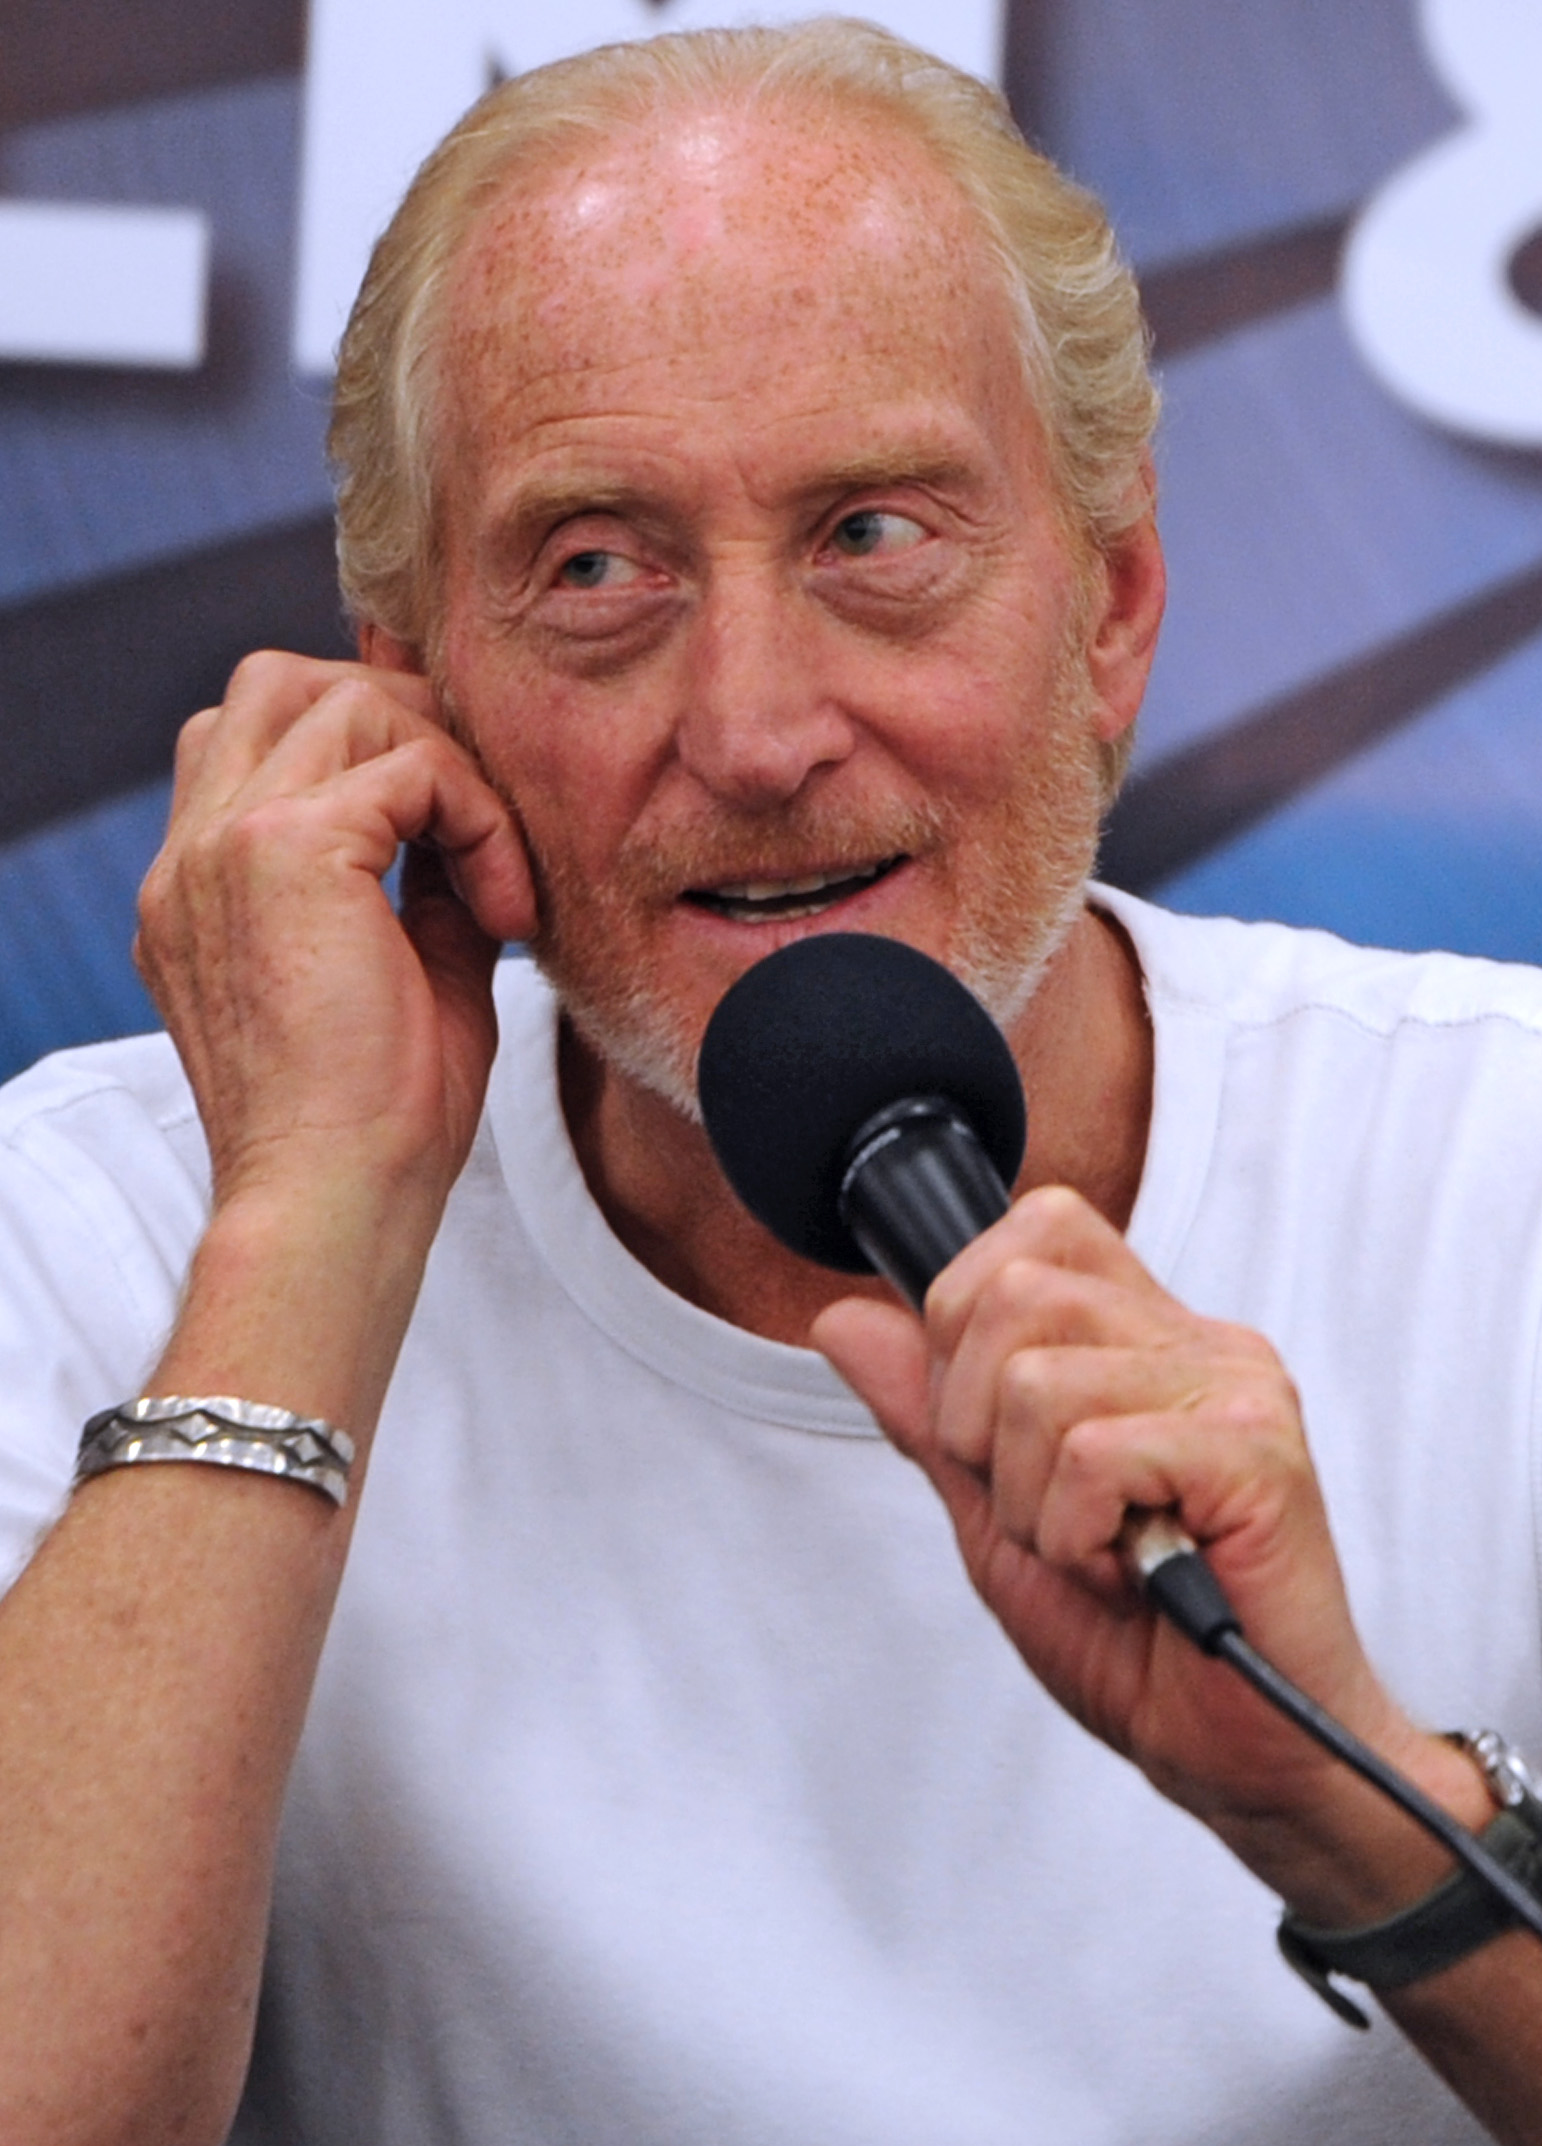 https://upload.wikimedia.org/wikipedia/commons/1/12/Charles_Dance_2012_%28cropped%29.jpg